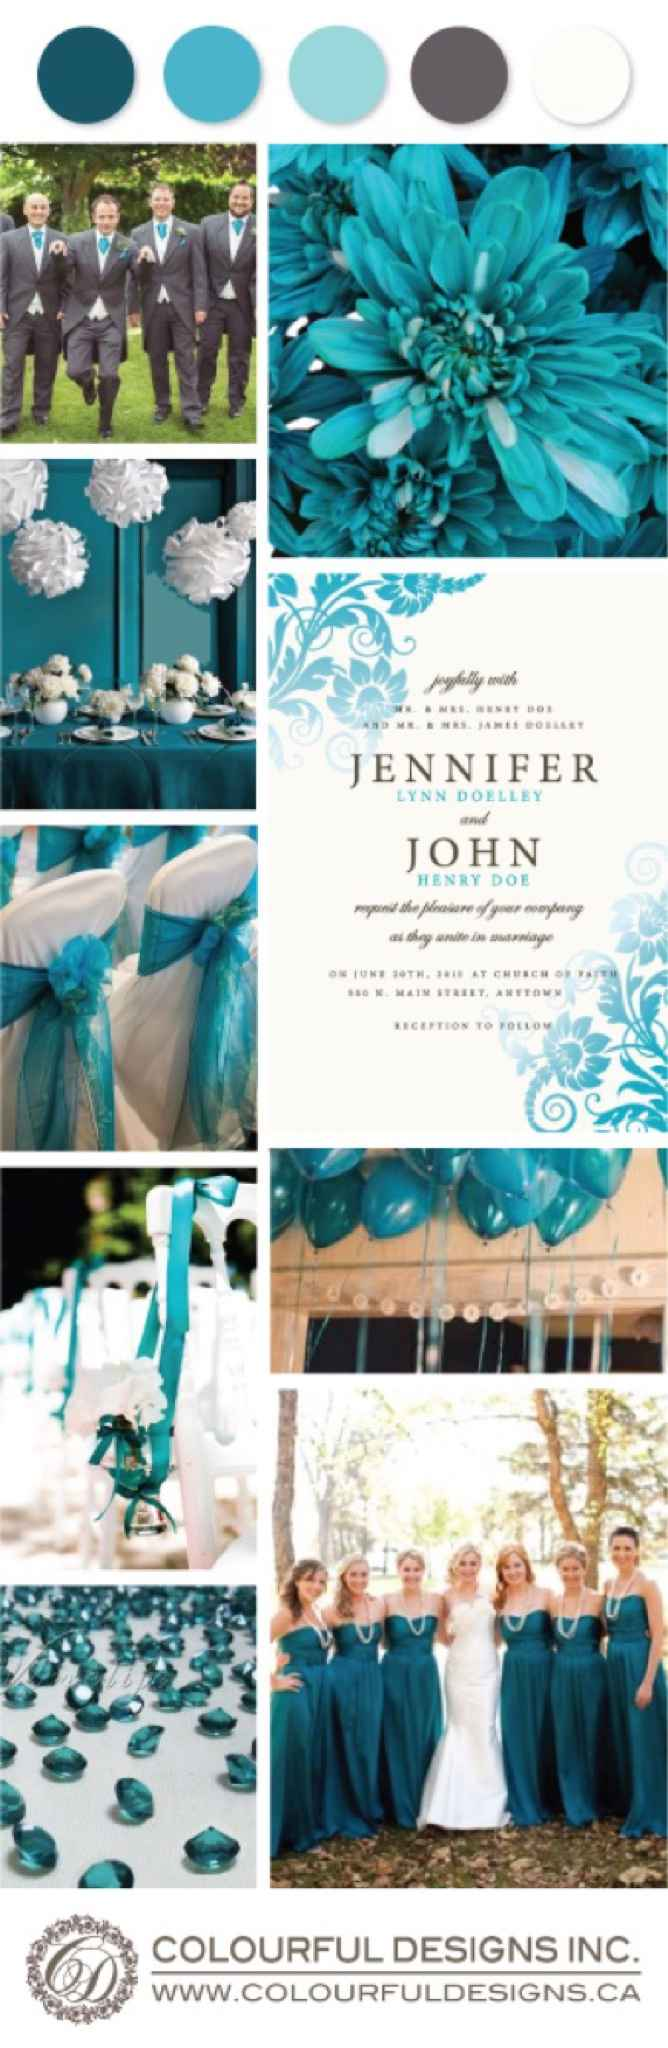 Wedding Colour Suggestions - 1